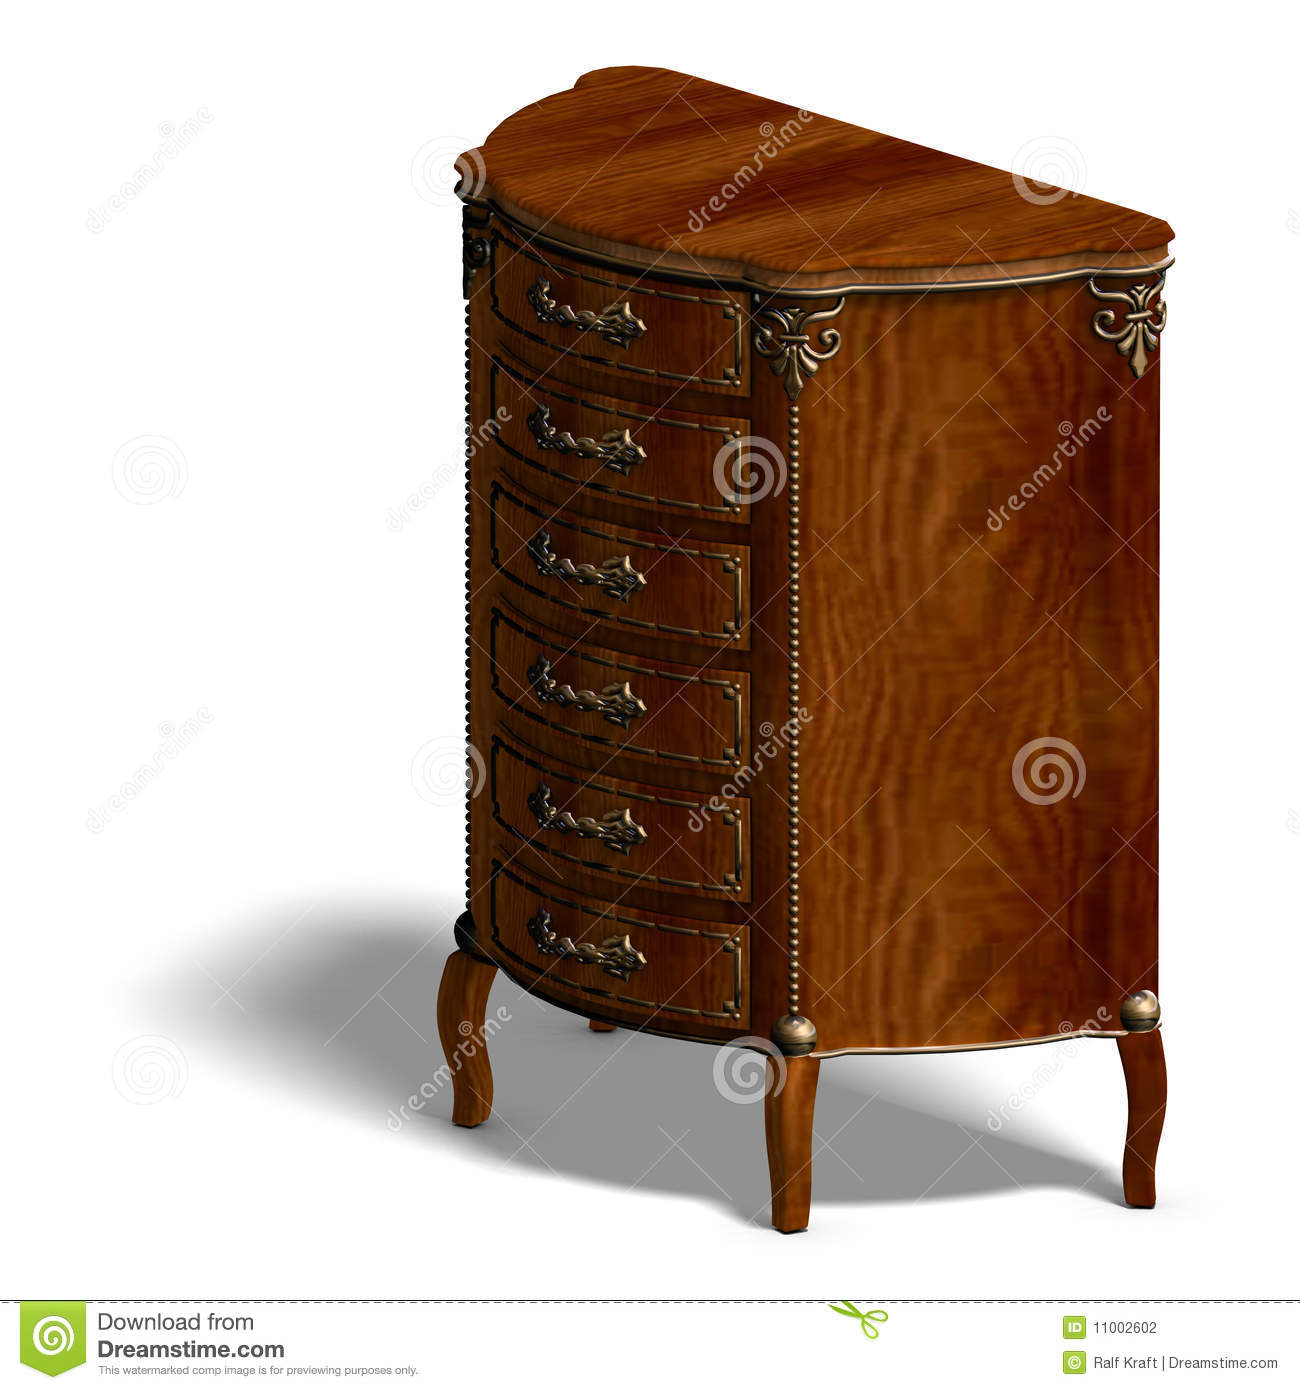 Louis Xv Ladenkast.Houten Ladenkast Met Laden Van Louis Xv Stock Illustratie